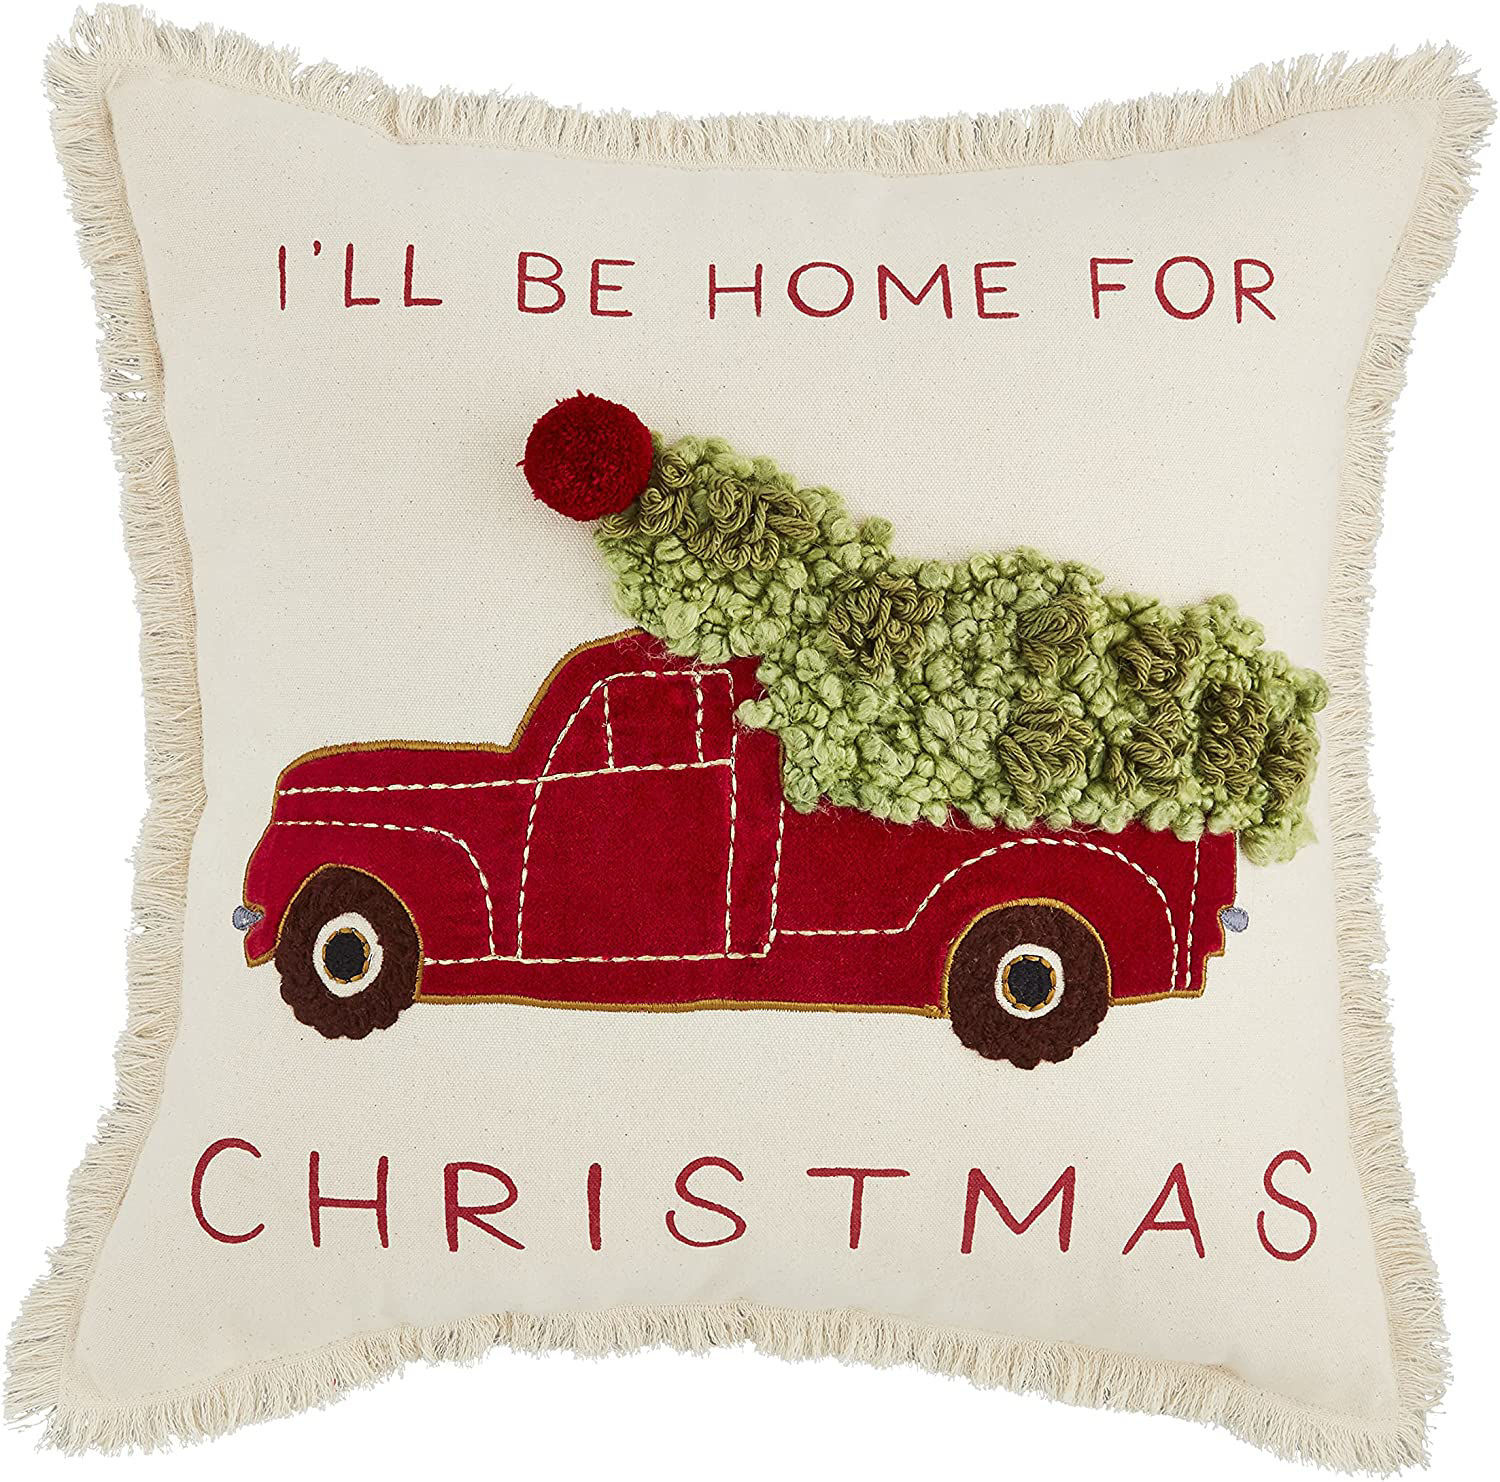 Christmas Applique Farm Pillows (Assorted) by Mudpie